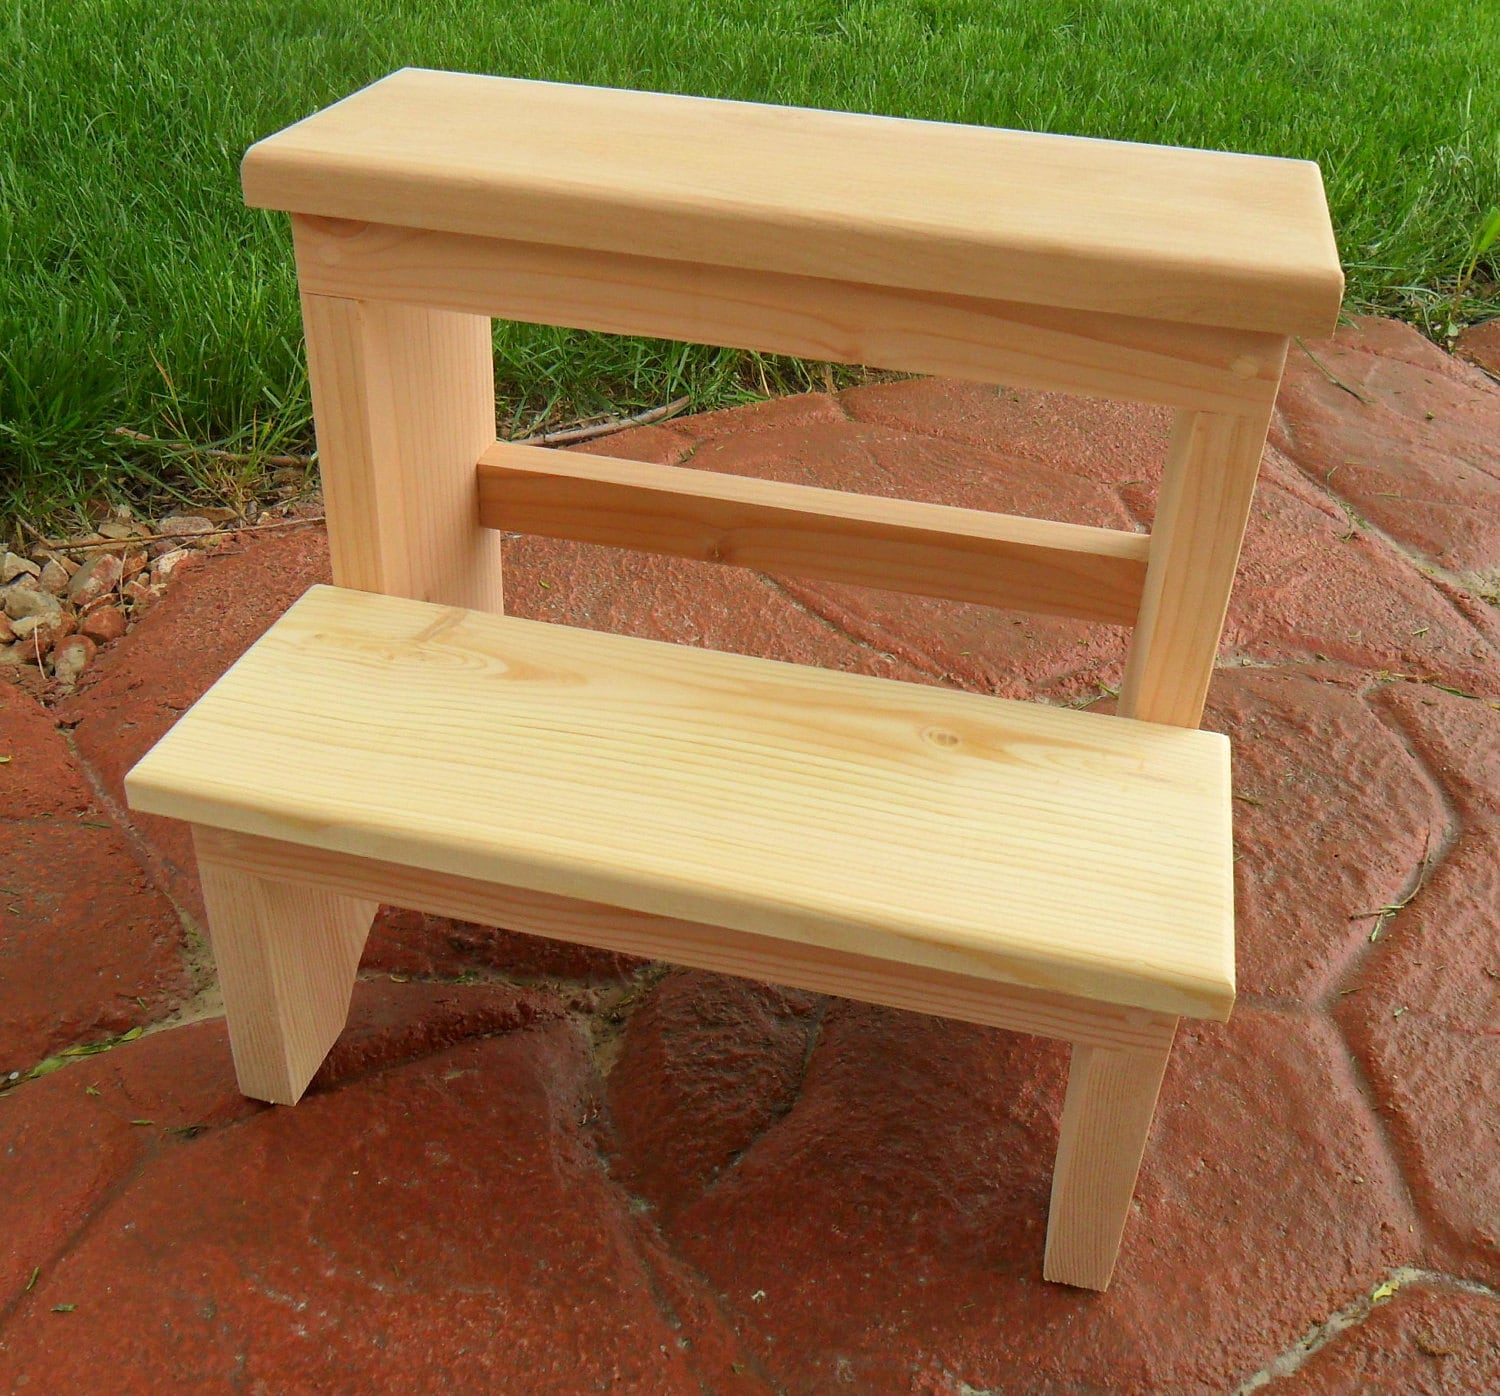 Handcrafted Shaker Inspired Wooden Step Stool Unfinished